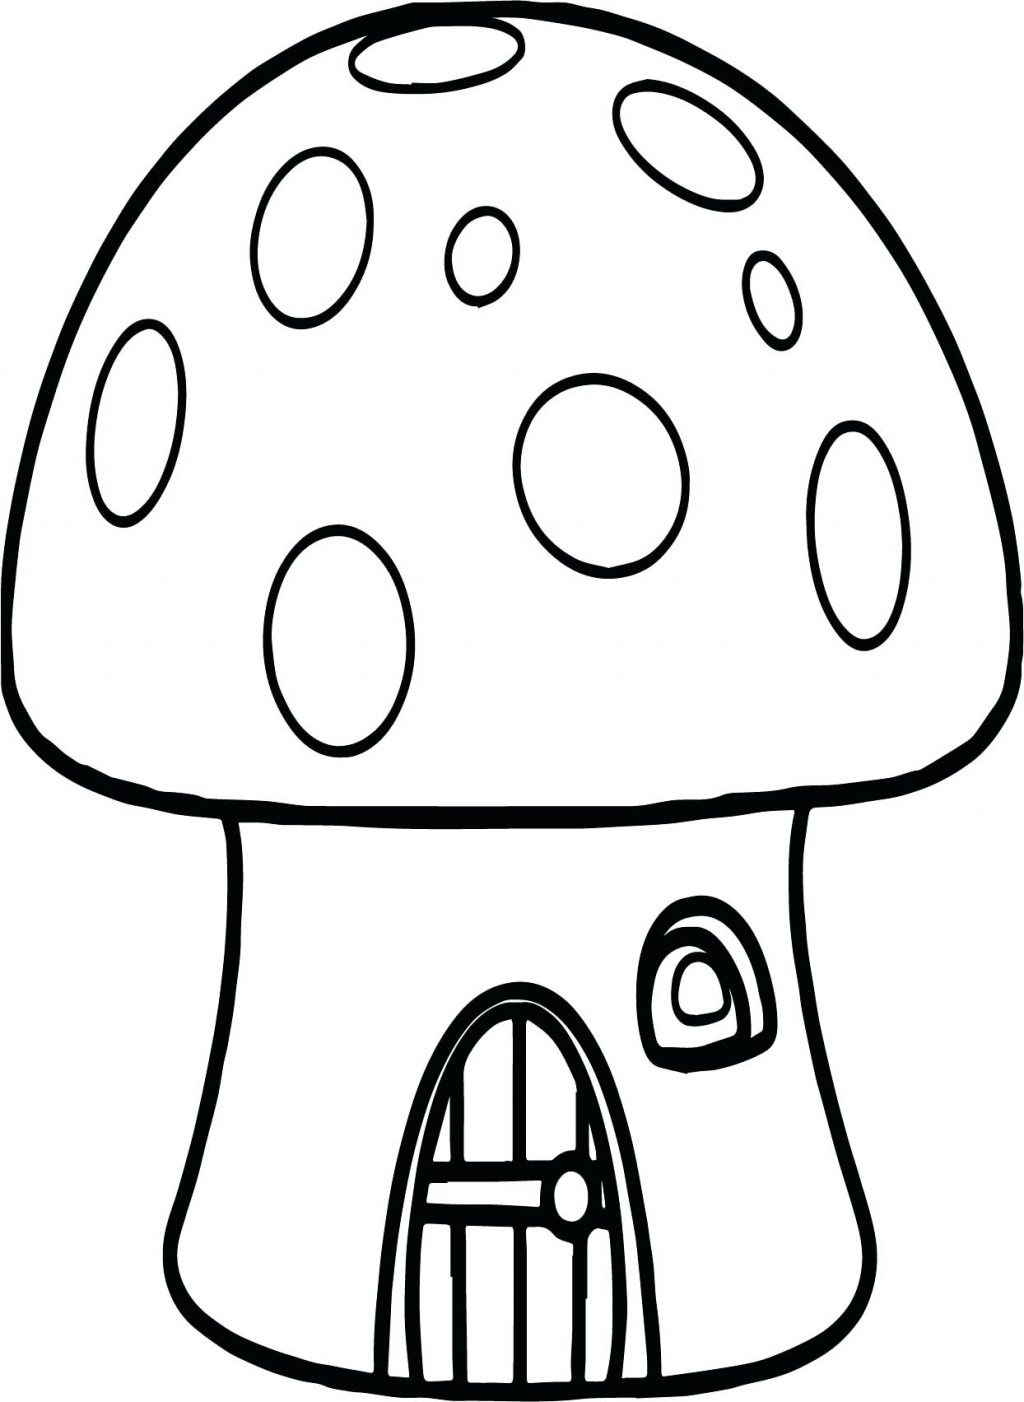 Toadstool Coloring Pages At Getcolorings